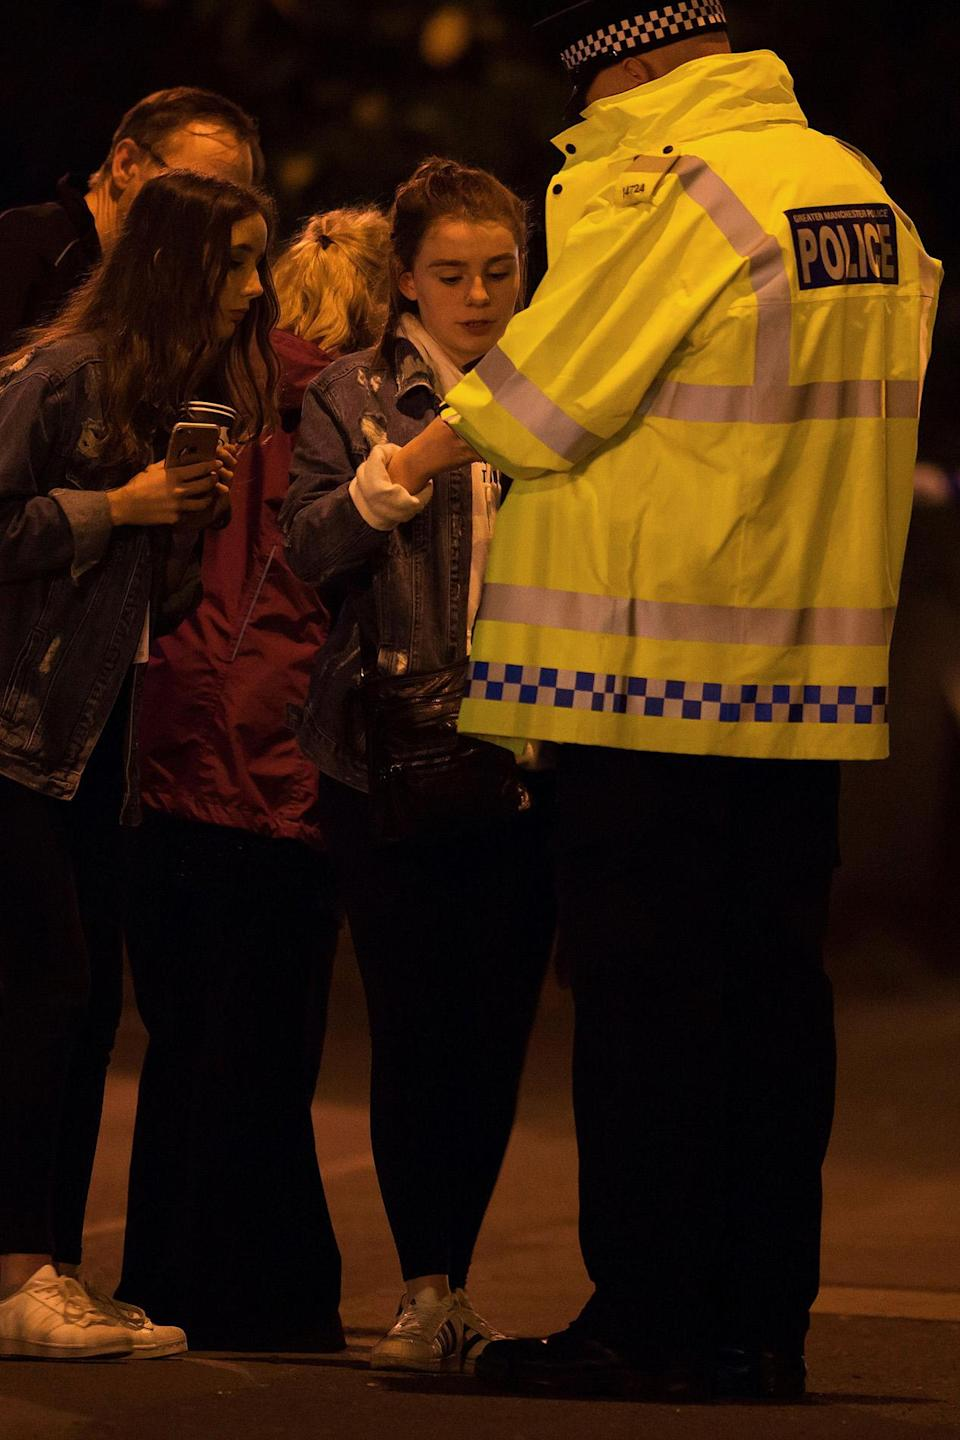 <p>A police officer talks to locals outside the Manchester Arena, where U.S. singer Ariana Grande had been performing, in Manchester, northern England, Britain May 22, 2017. (Jon Super/Reuters) </p>